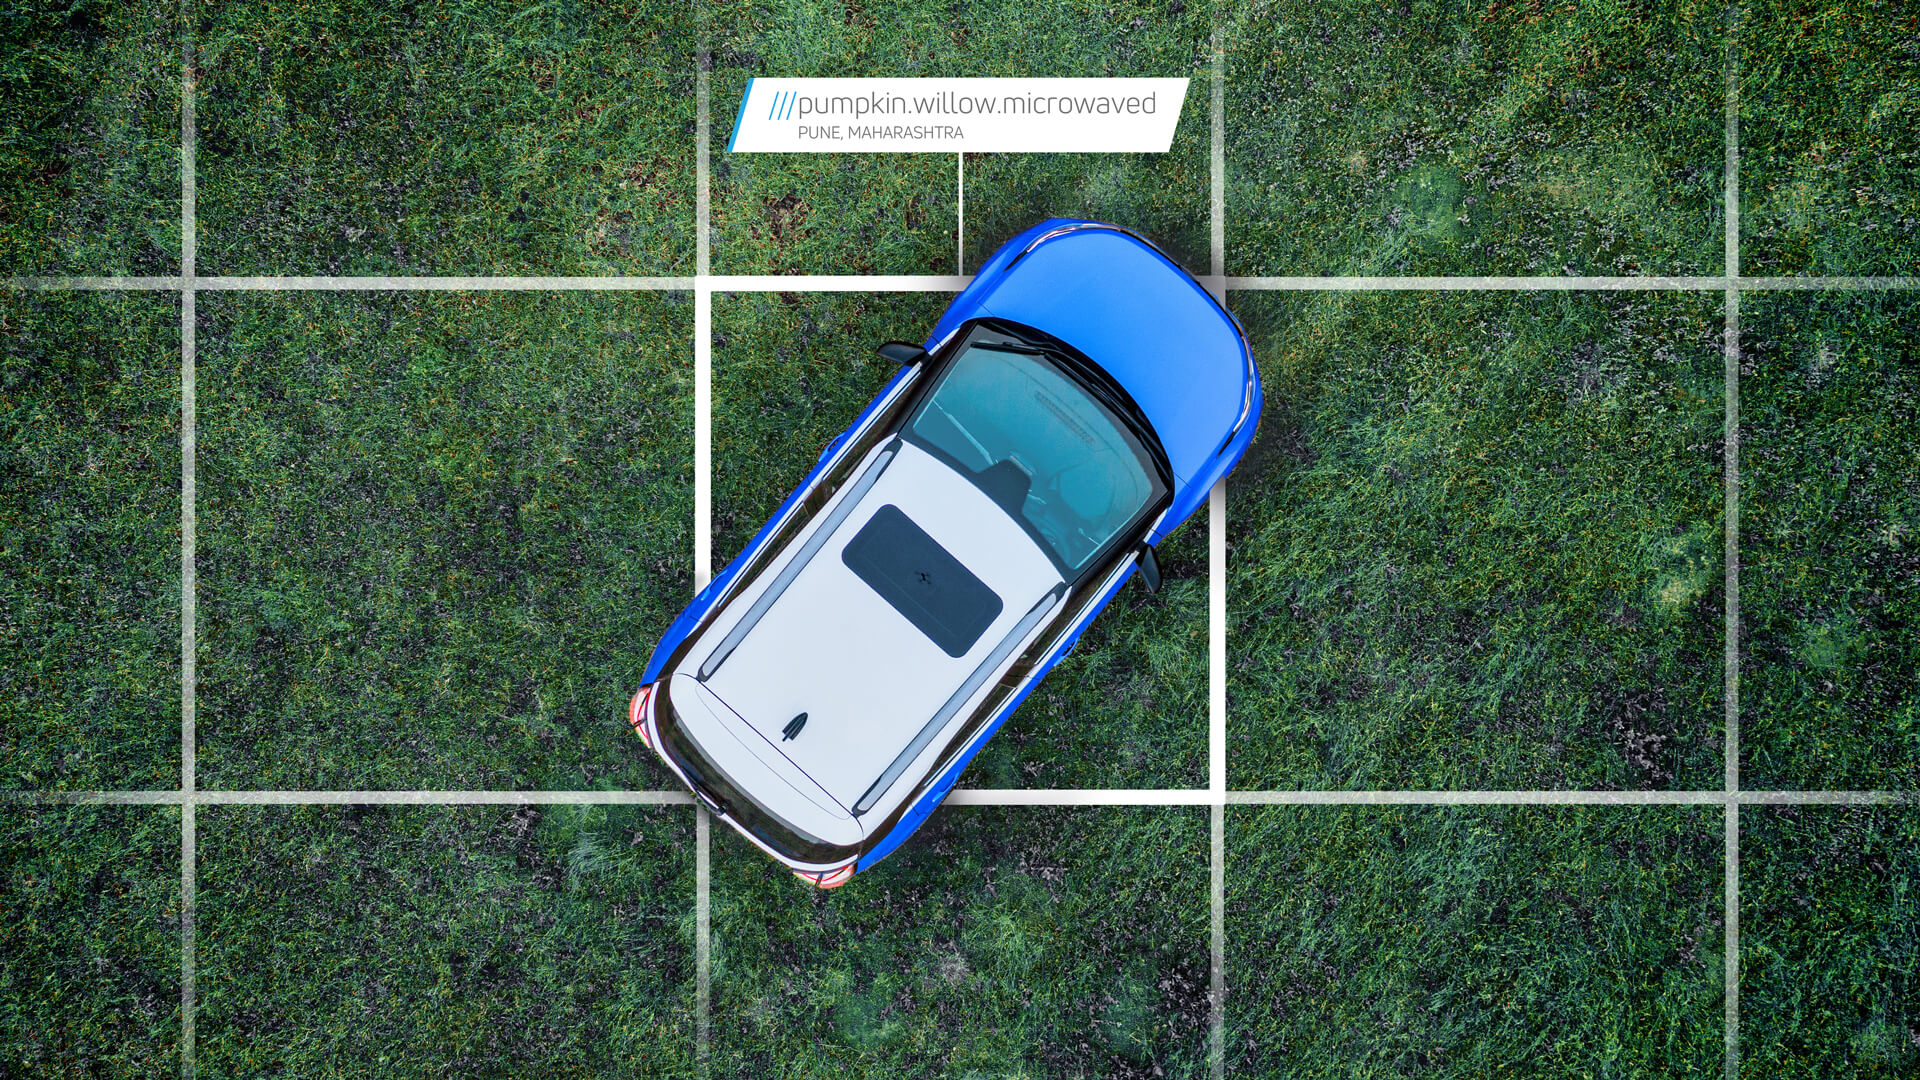 Birdseye view of a car on a grass track at 3 word location Pumpkin.Willow.Mircowaved